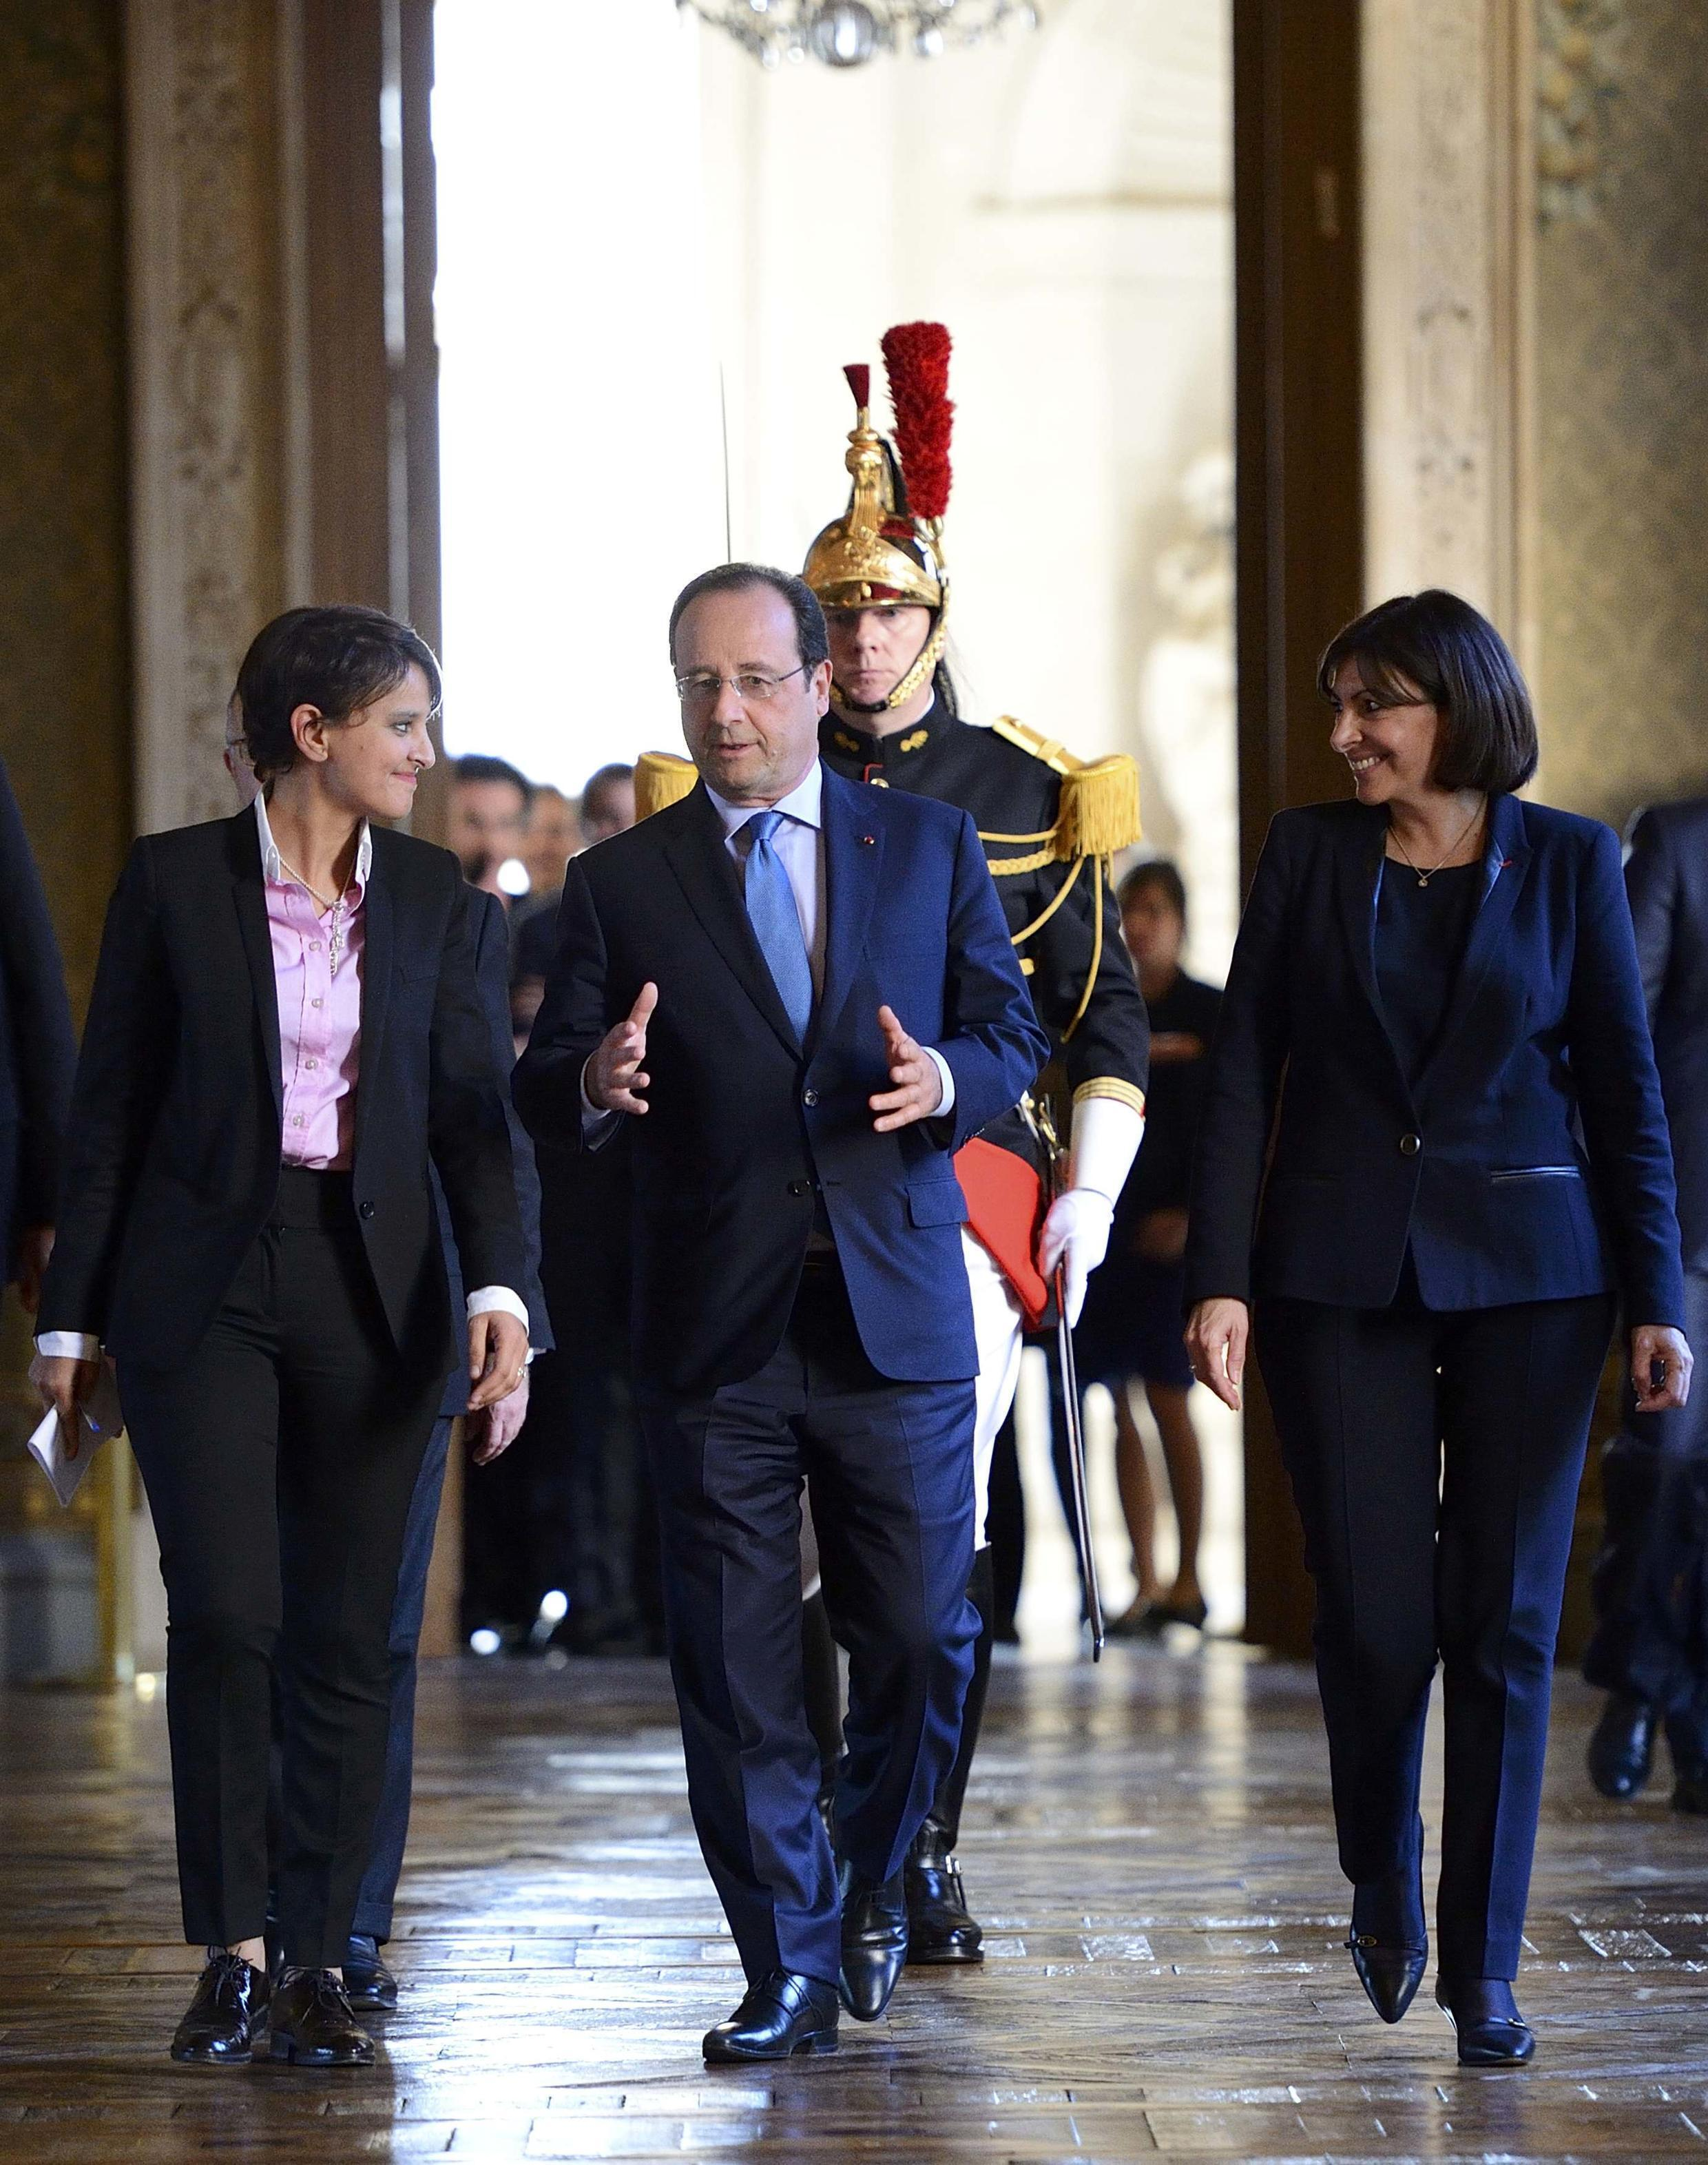 French President Francois Hollande (C) speaks with French Minister for Women's Rights Najat Vallaud-Belkacem (L) and Paris Mayor Anne Hidalgo (R) at the Paris town hall